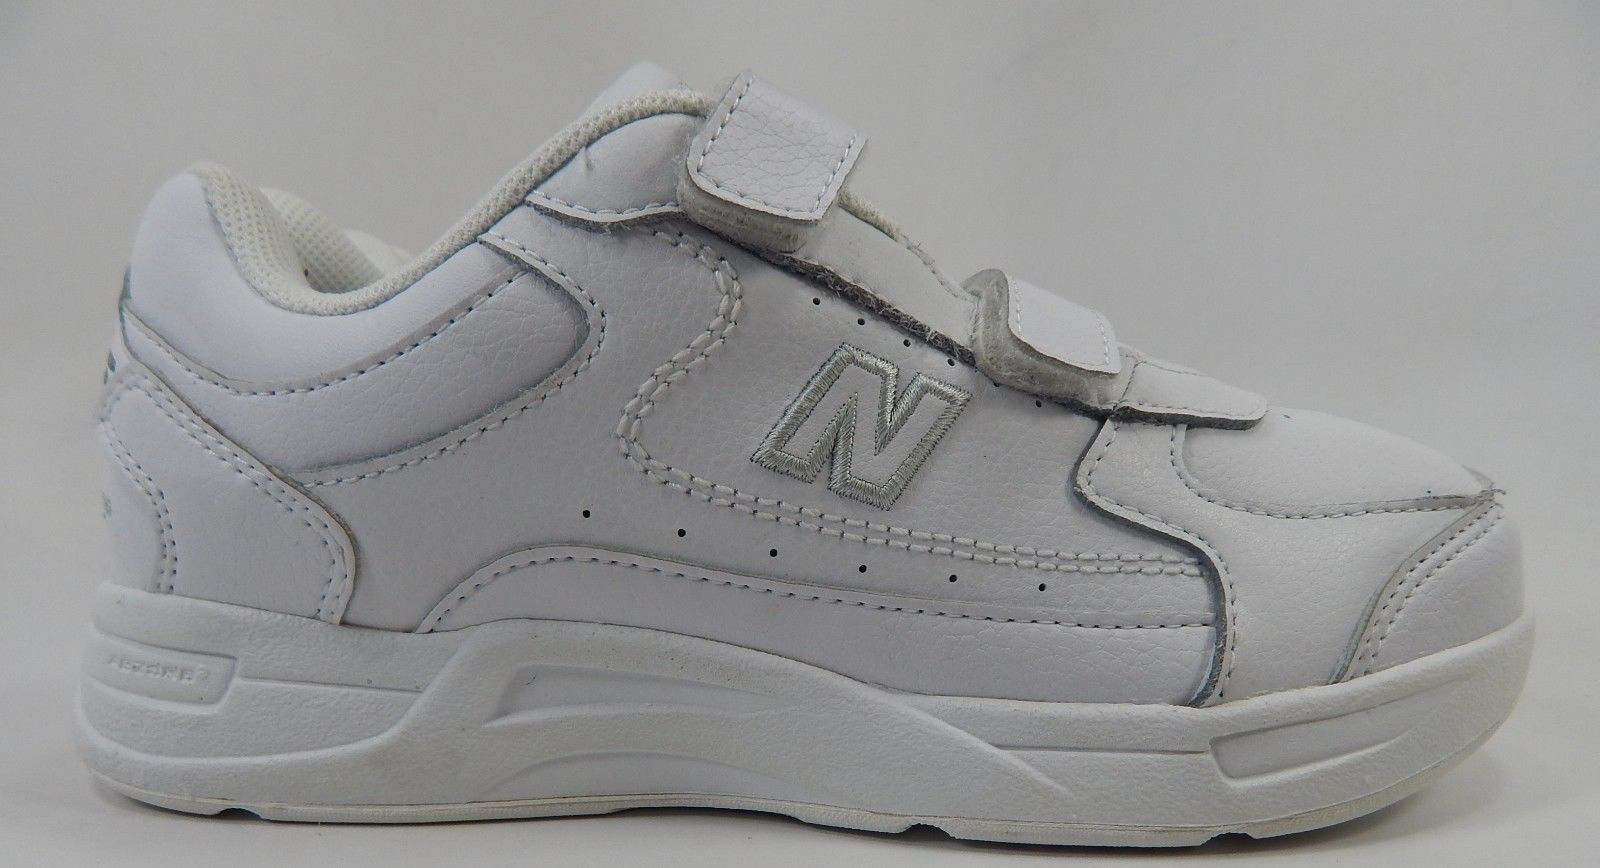 New Balance 576 Size US 6.5 M (B) EU 37 Women's Walking Shoes White WW576VW